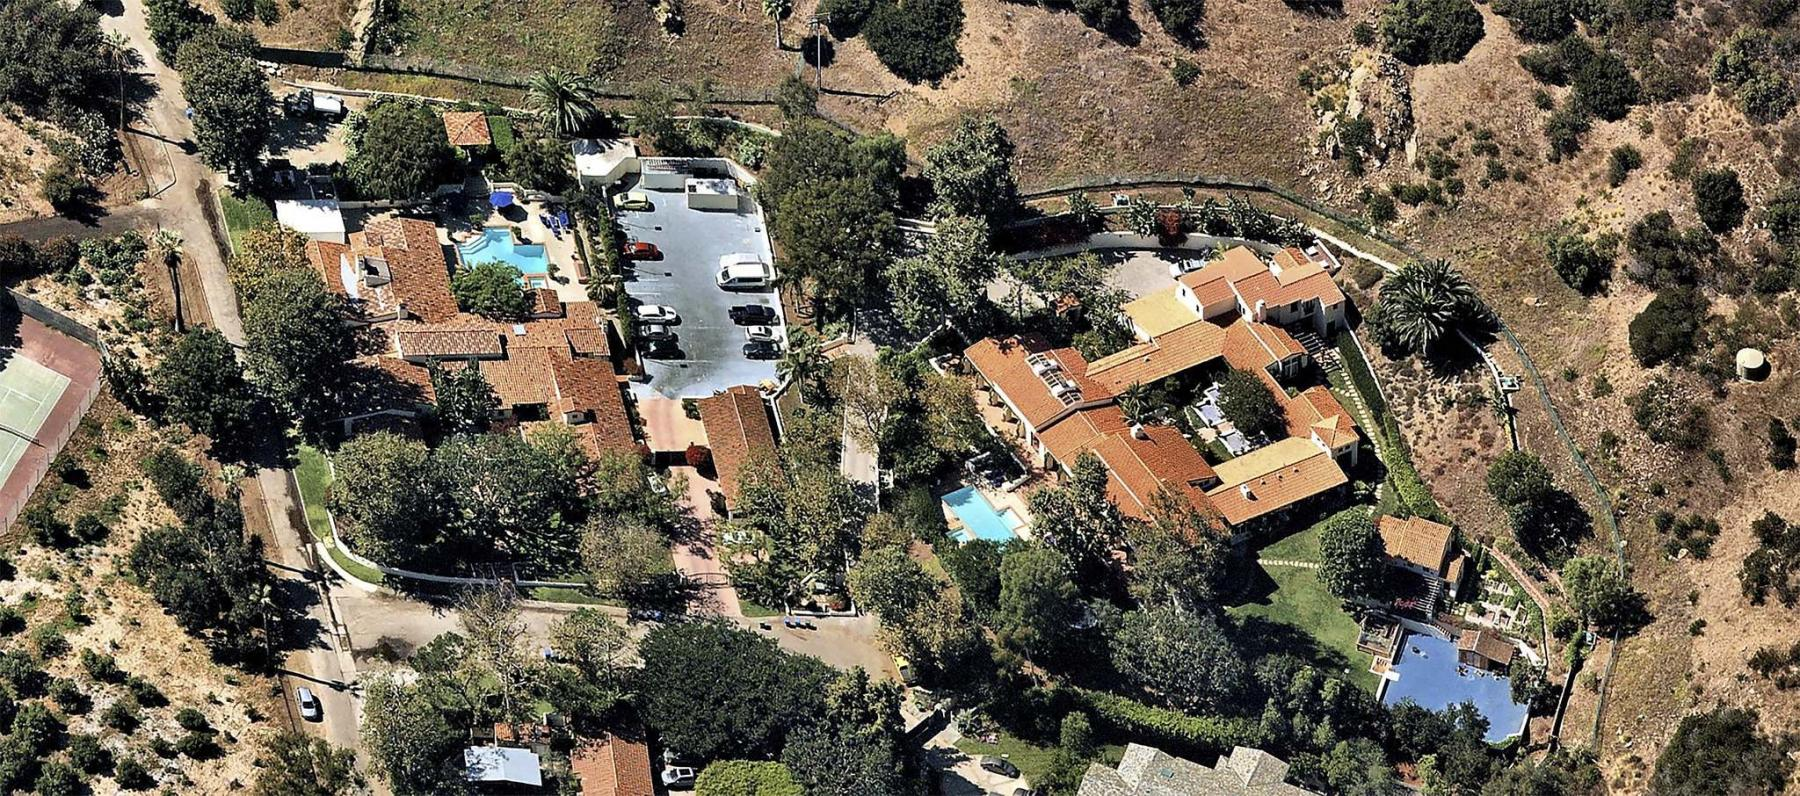 <p>NearMap / Handout</p><p>Blockbuster filmmaker James Cameron is seeking $25 million for his two-house compound in a gated Malibu community. The two properties combine for about four acres of grounds, 16,000 square feet of living space, 11 bedrooms, 13 bathrooms and two swimming pools.</p></p>